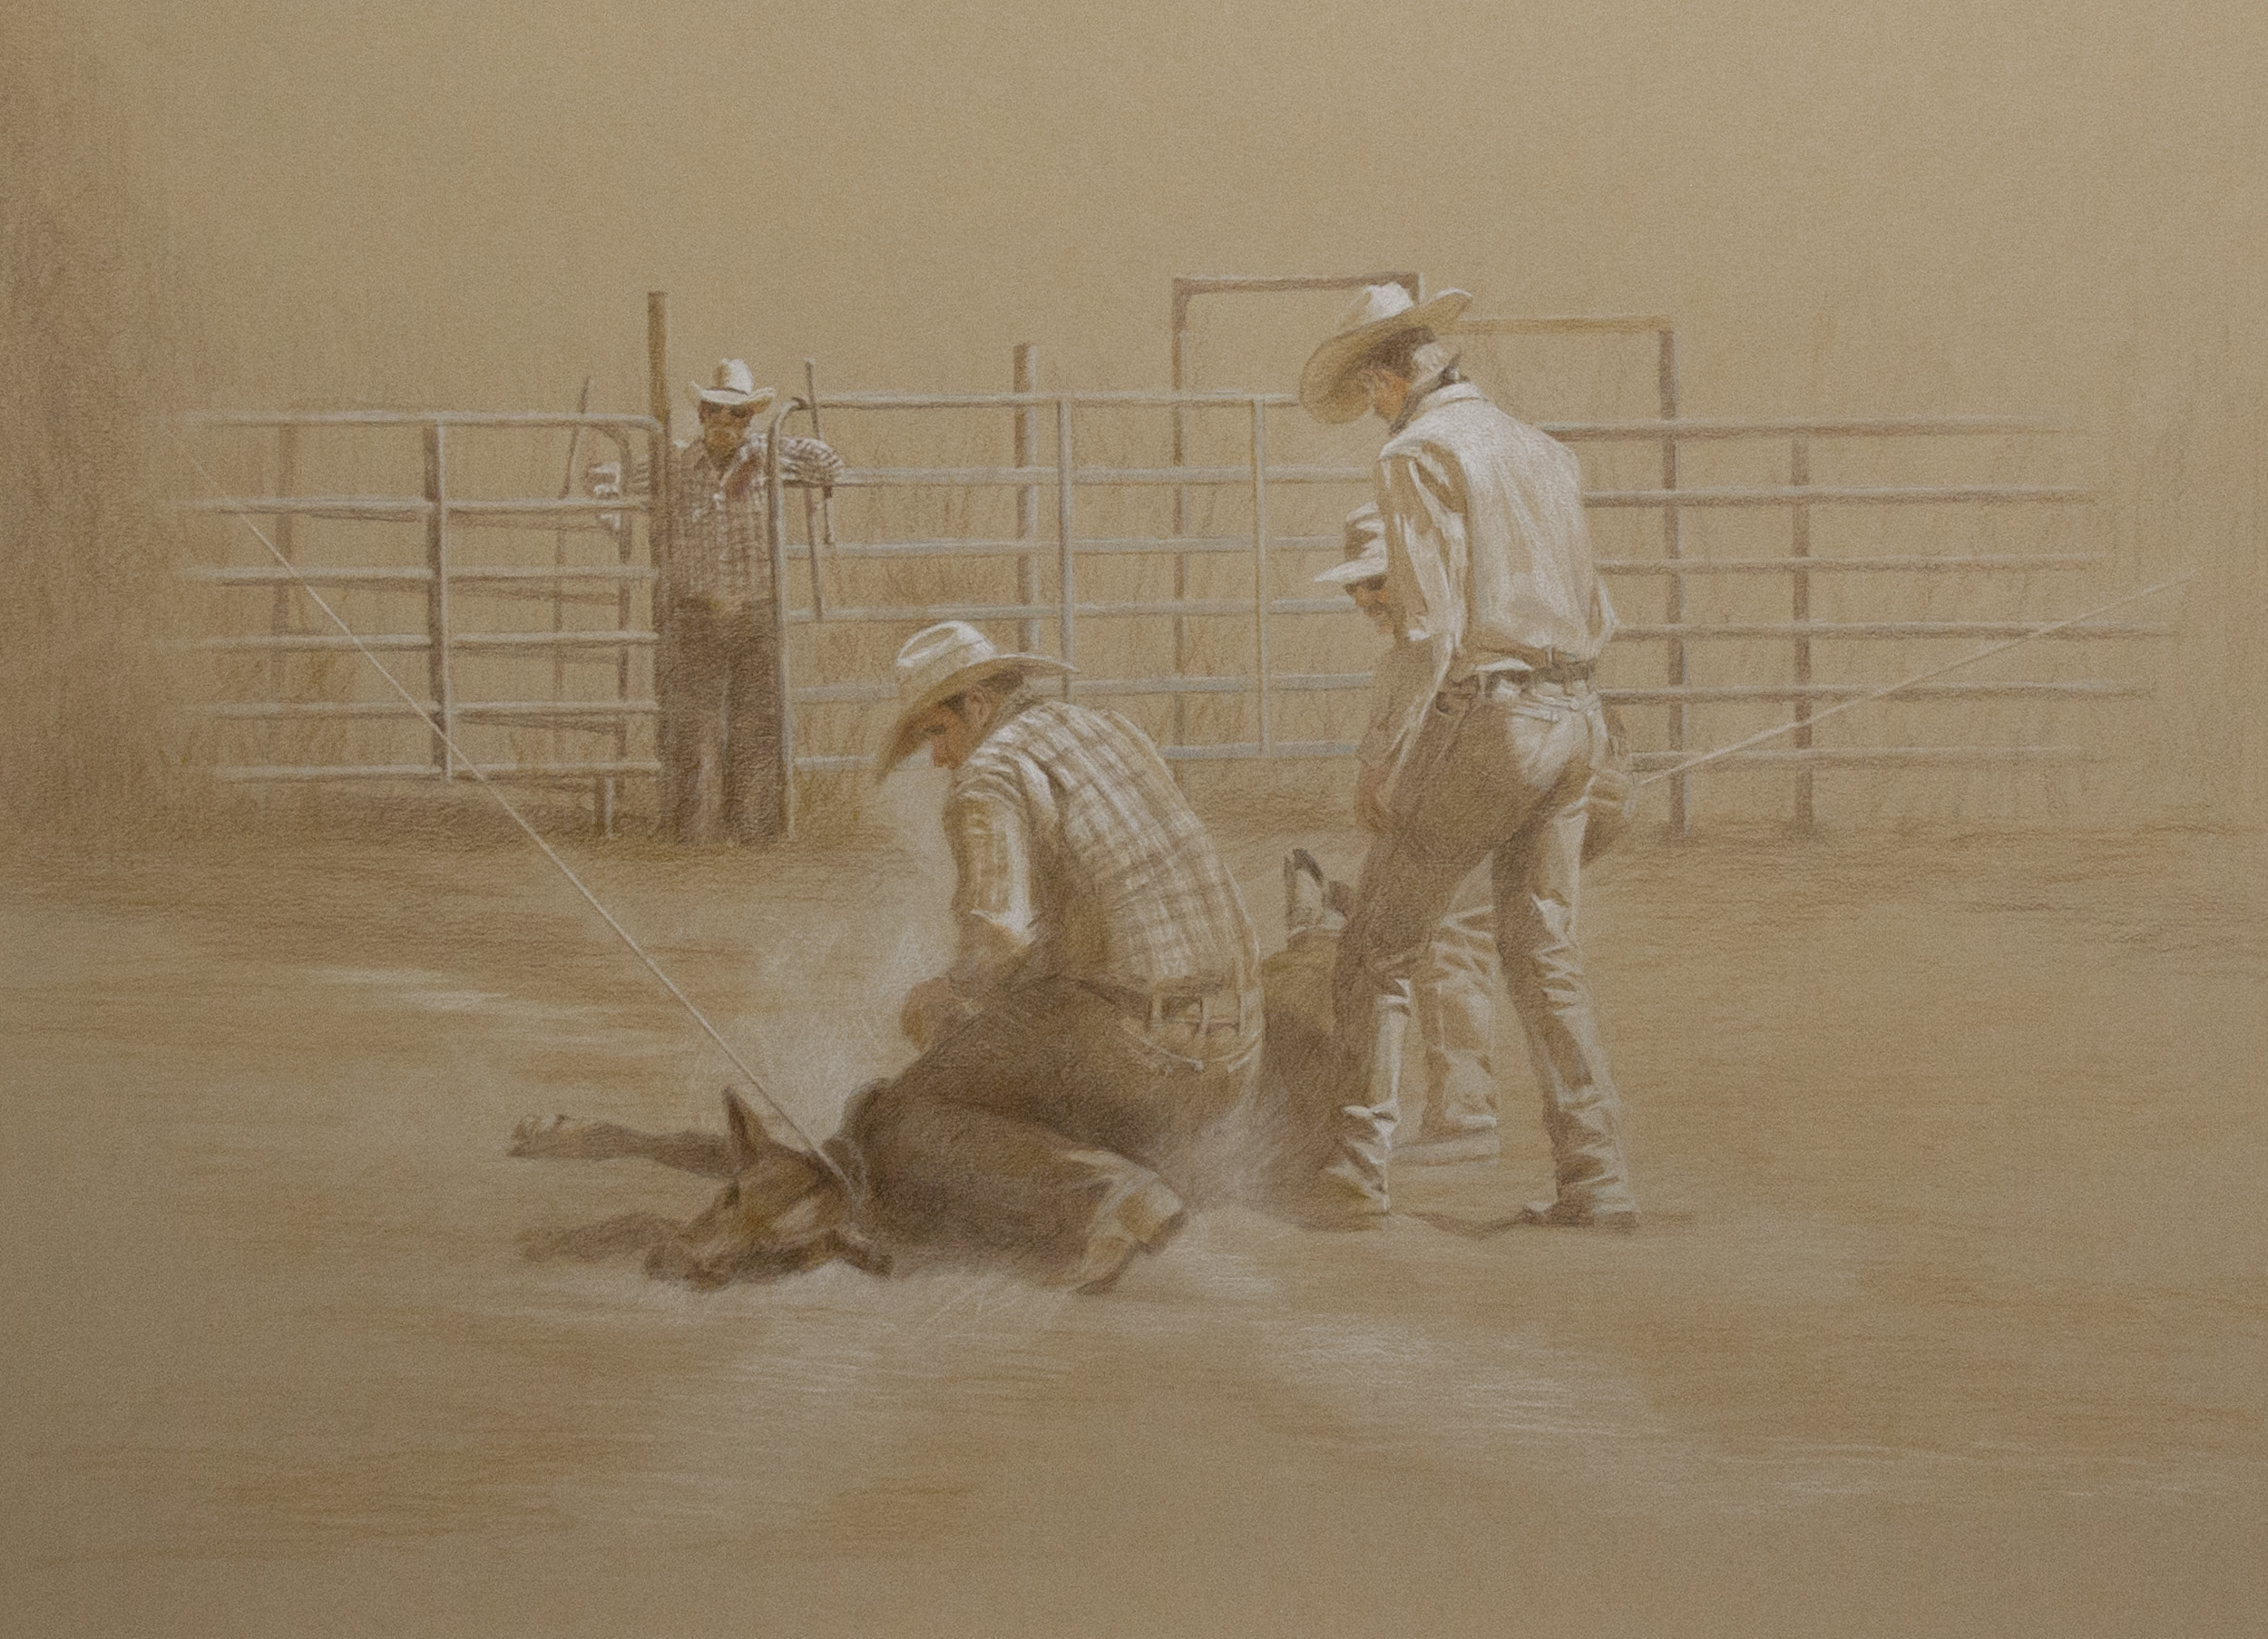 This is one of Western artist George Paliotto's original pencil and charcoal drawings depicting contemporary and historical cowboy life. Contact the artist for more information about purchasing this painting.